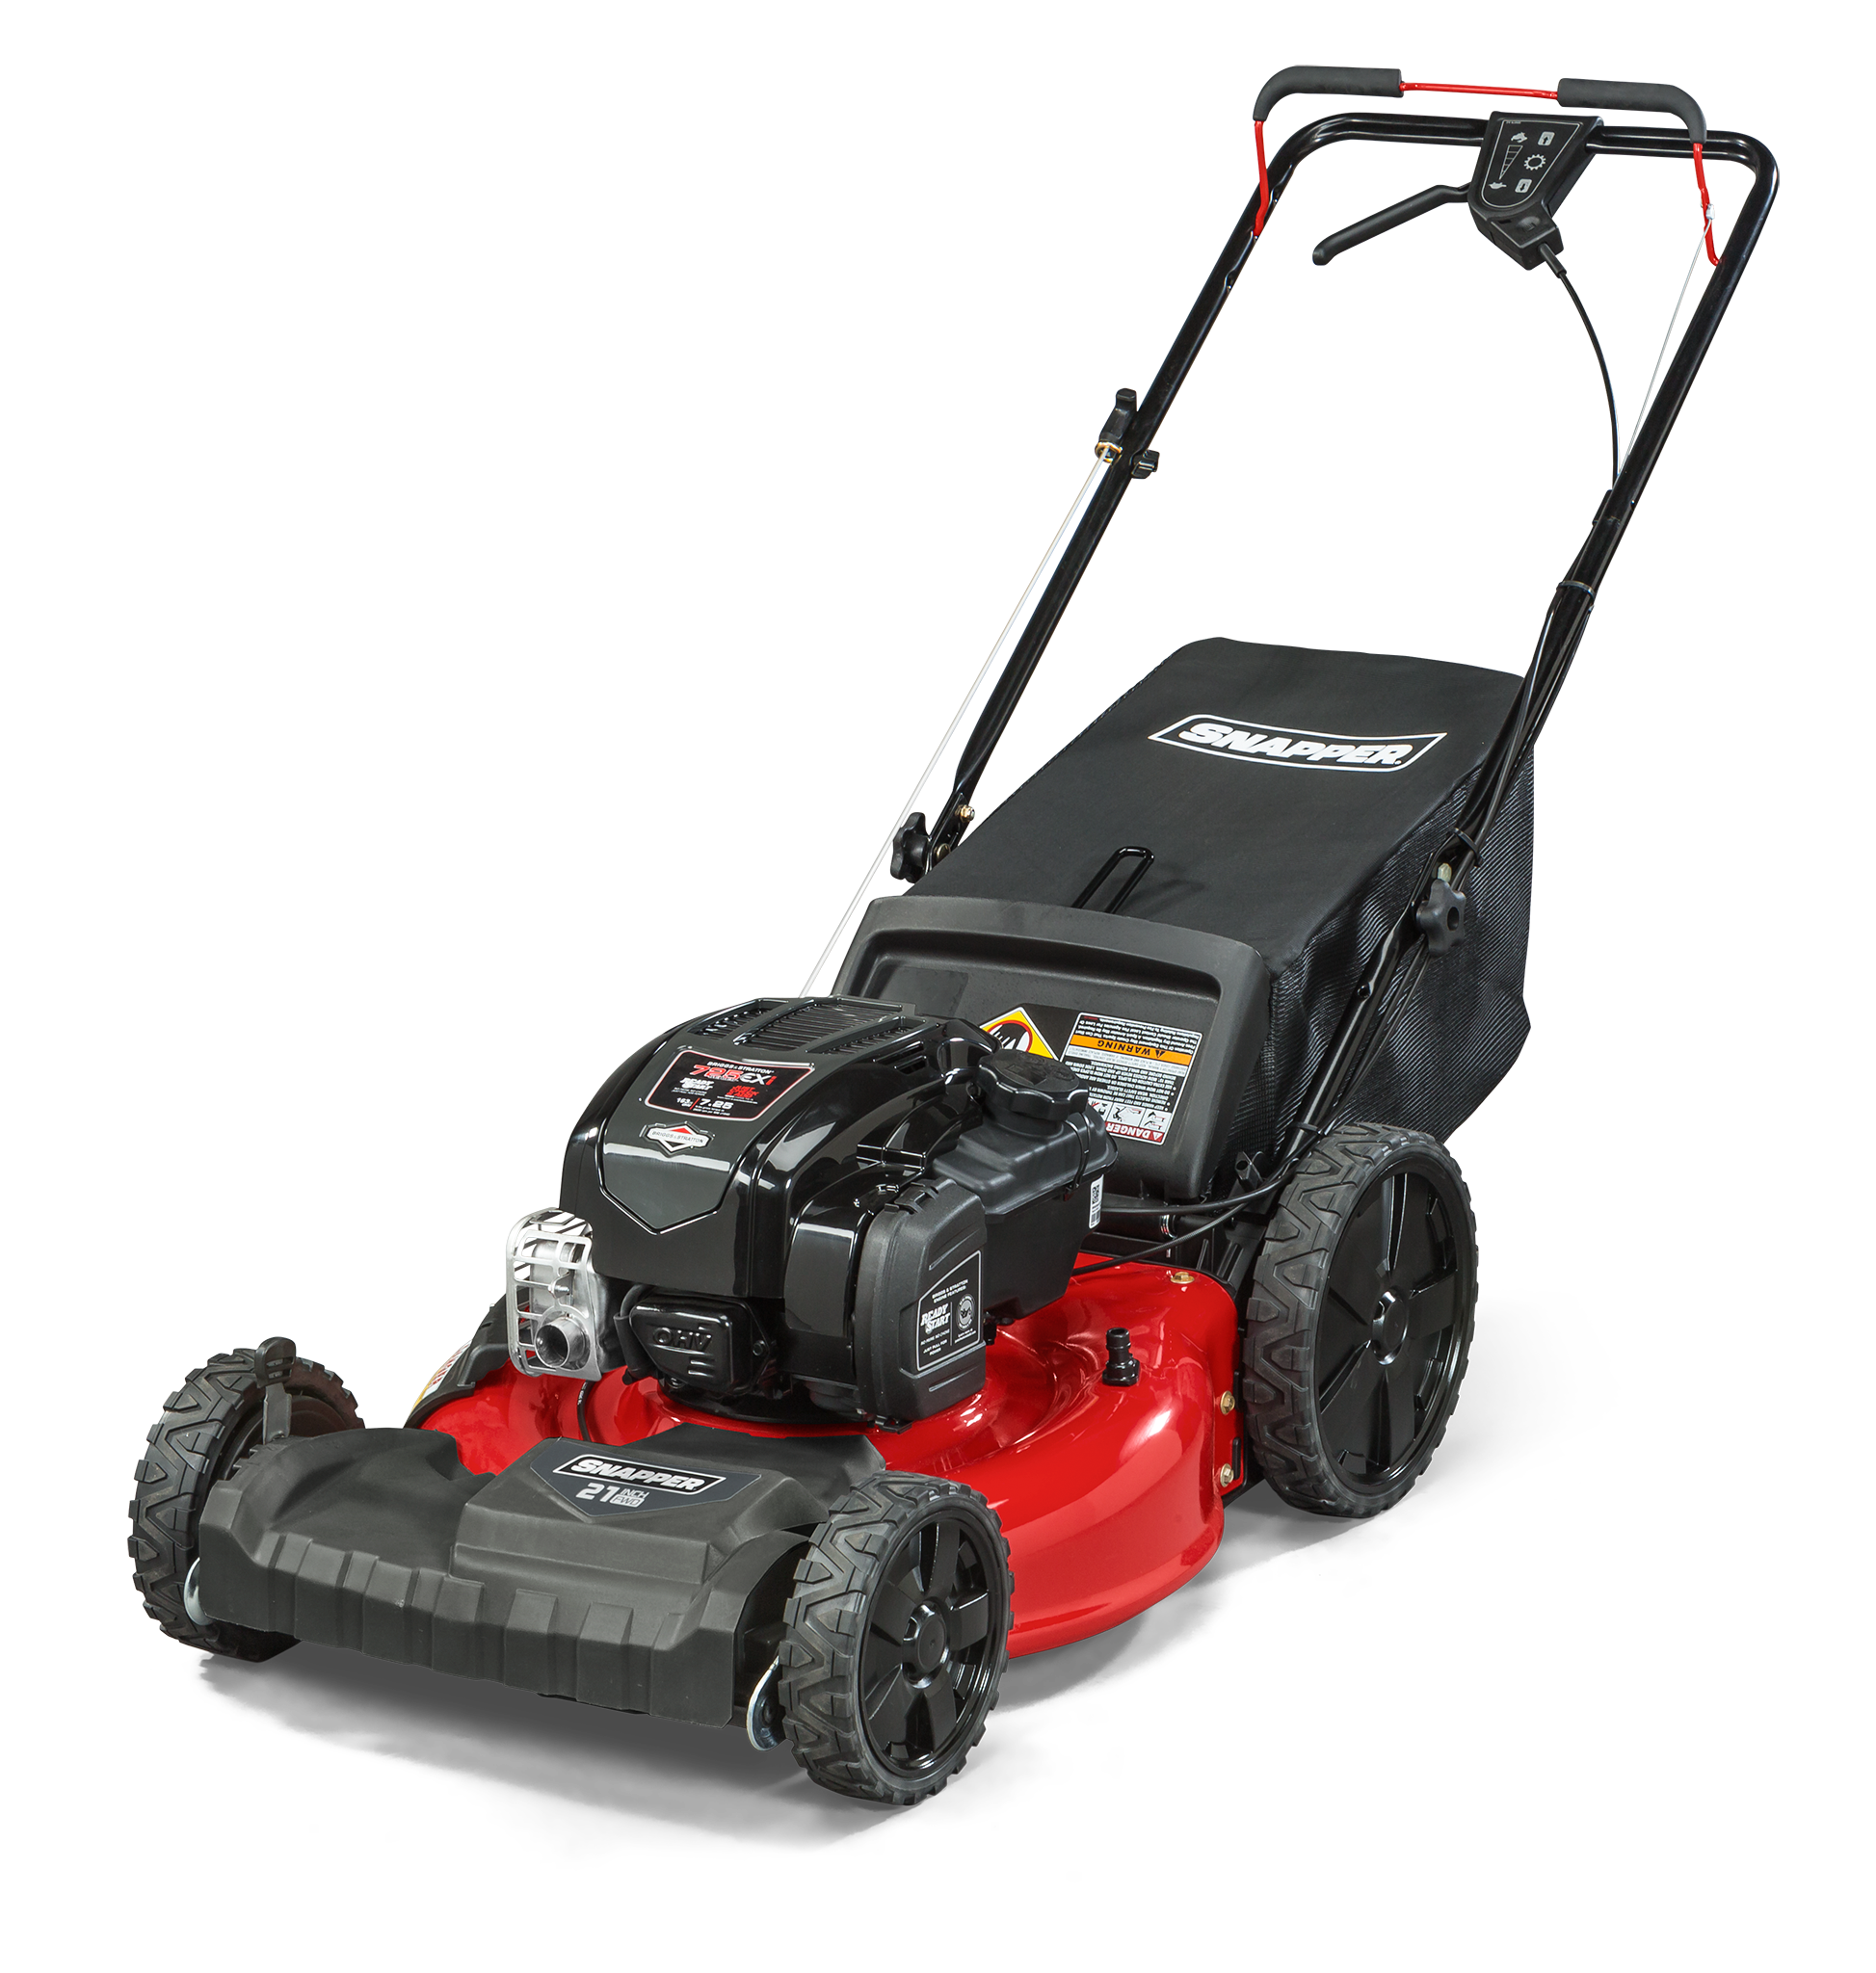 Snapper 21  Gas Front Wheel Drive Variable Speed Self Propelled Lawn Mower with Briggs and Stratton Engine, Side Discharge, Mulching, Rear Bag, Rear High Wheels